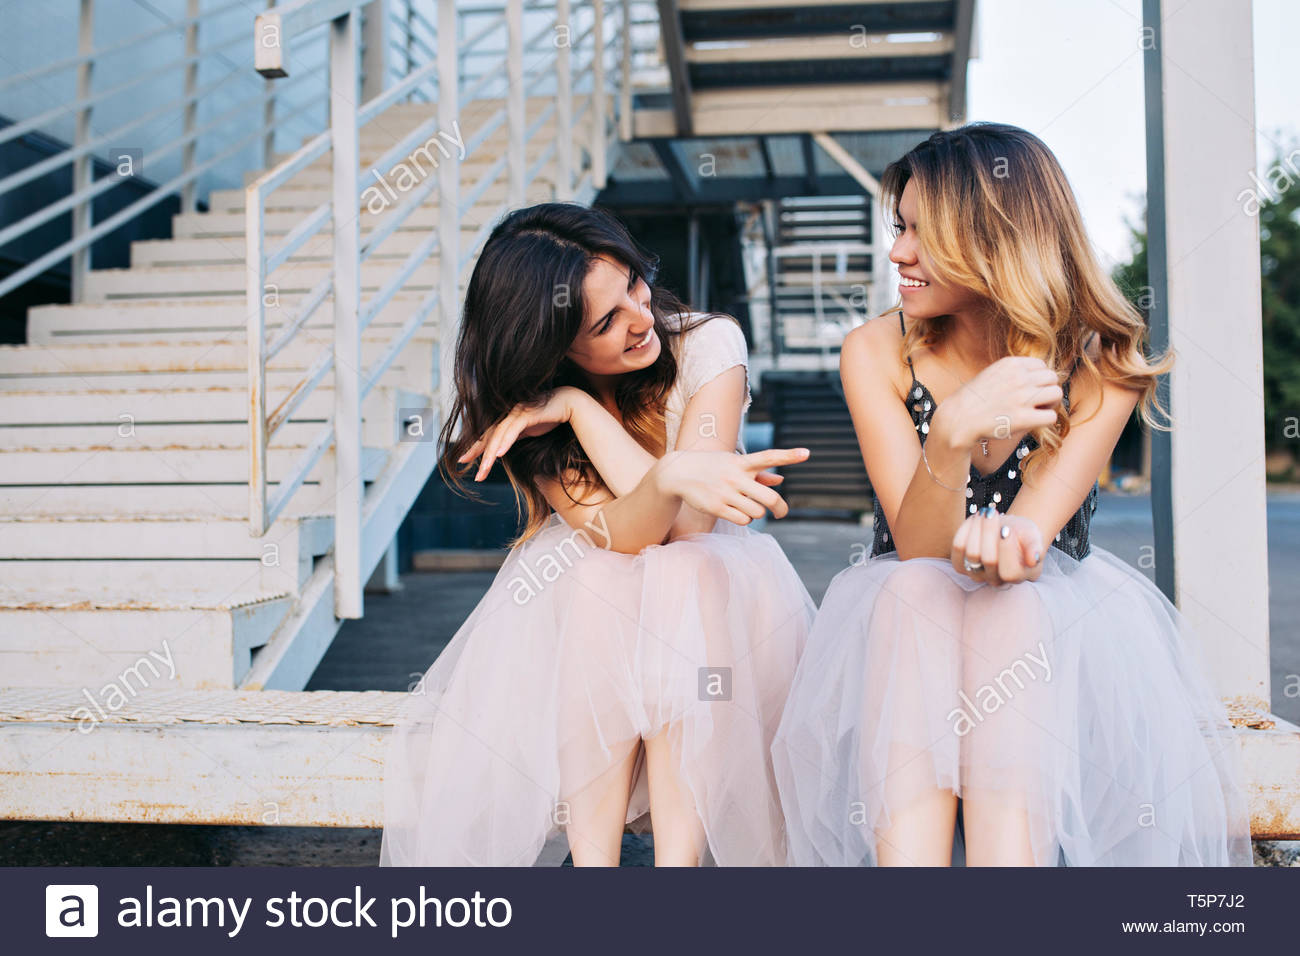 Brunette and blonde fashion attractive girls sitting on stairs in tulle skirts. They having fun and smiling to each other - Stock Image